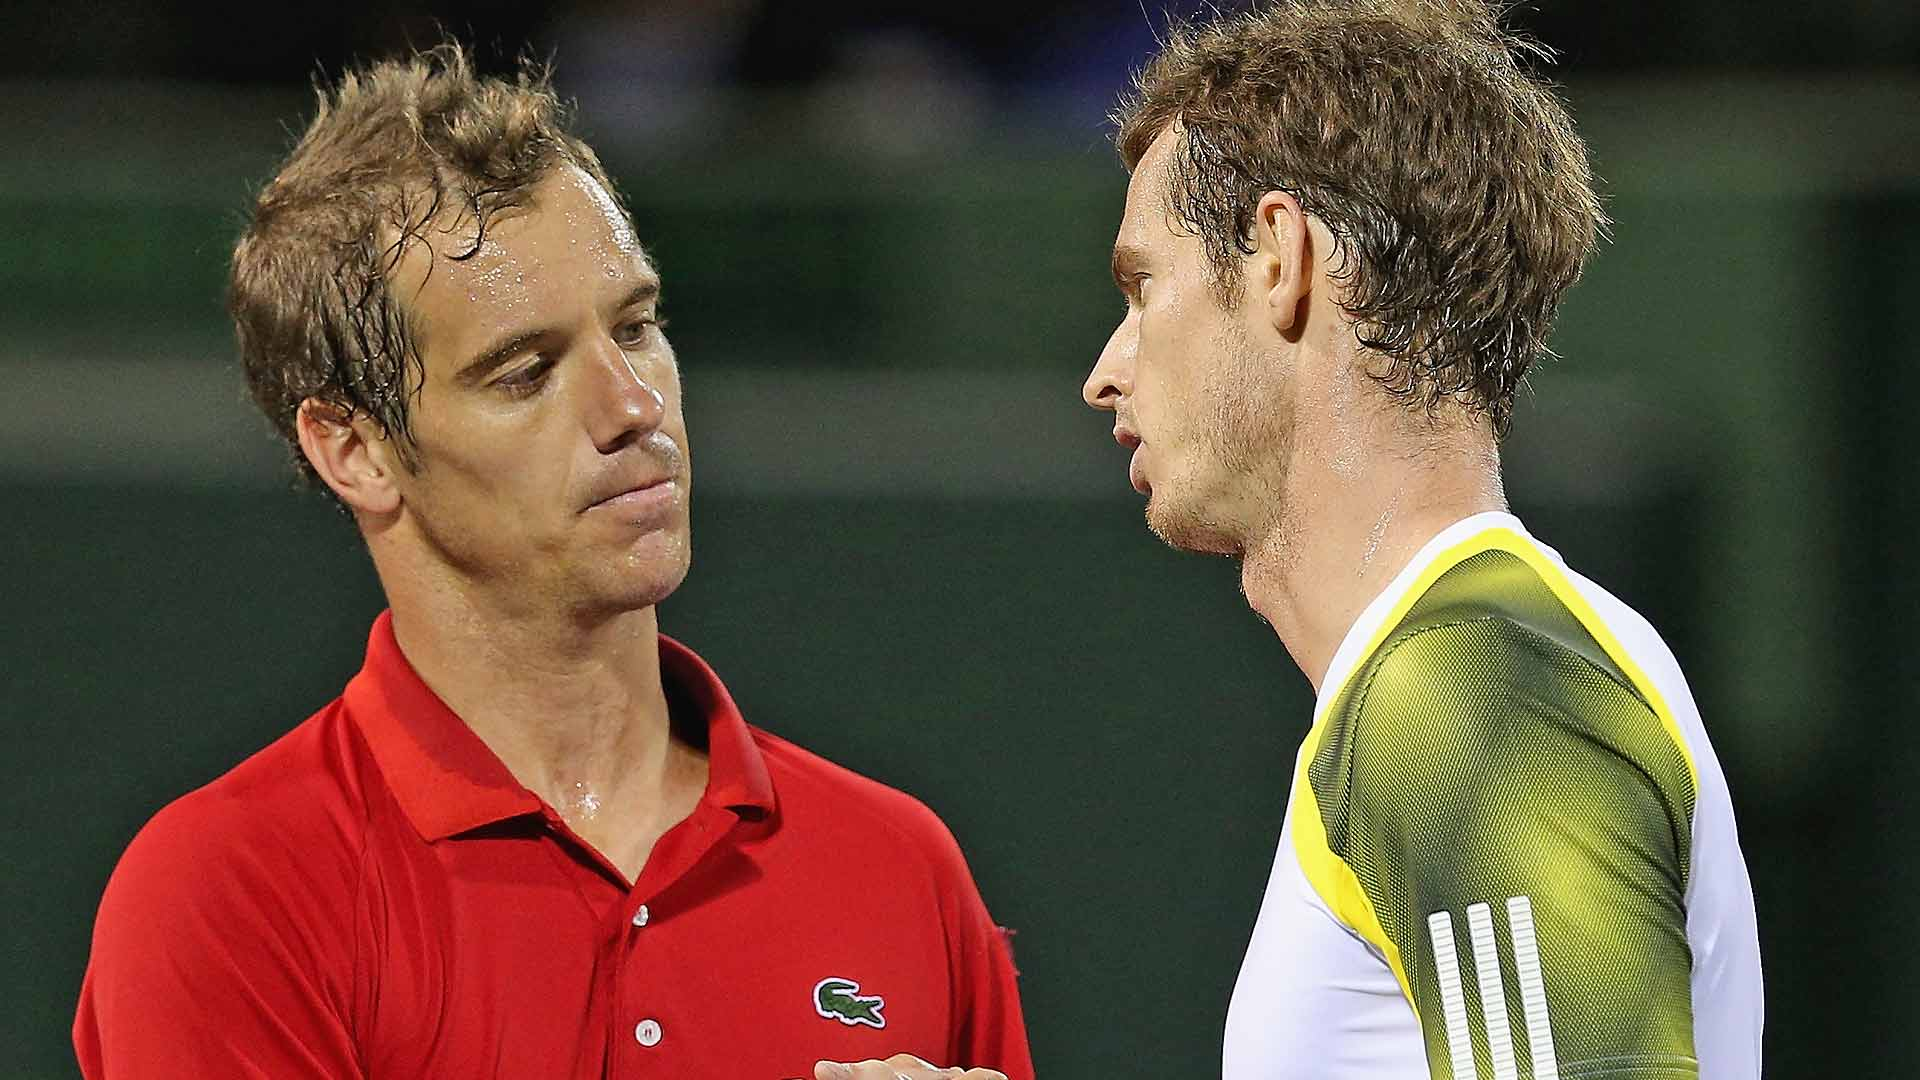 Image result for andy murray vs richard gasquet